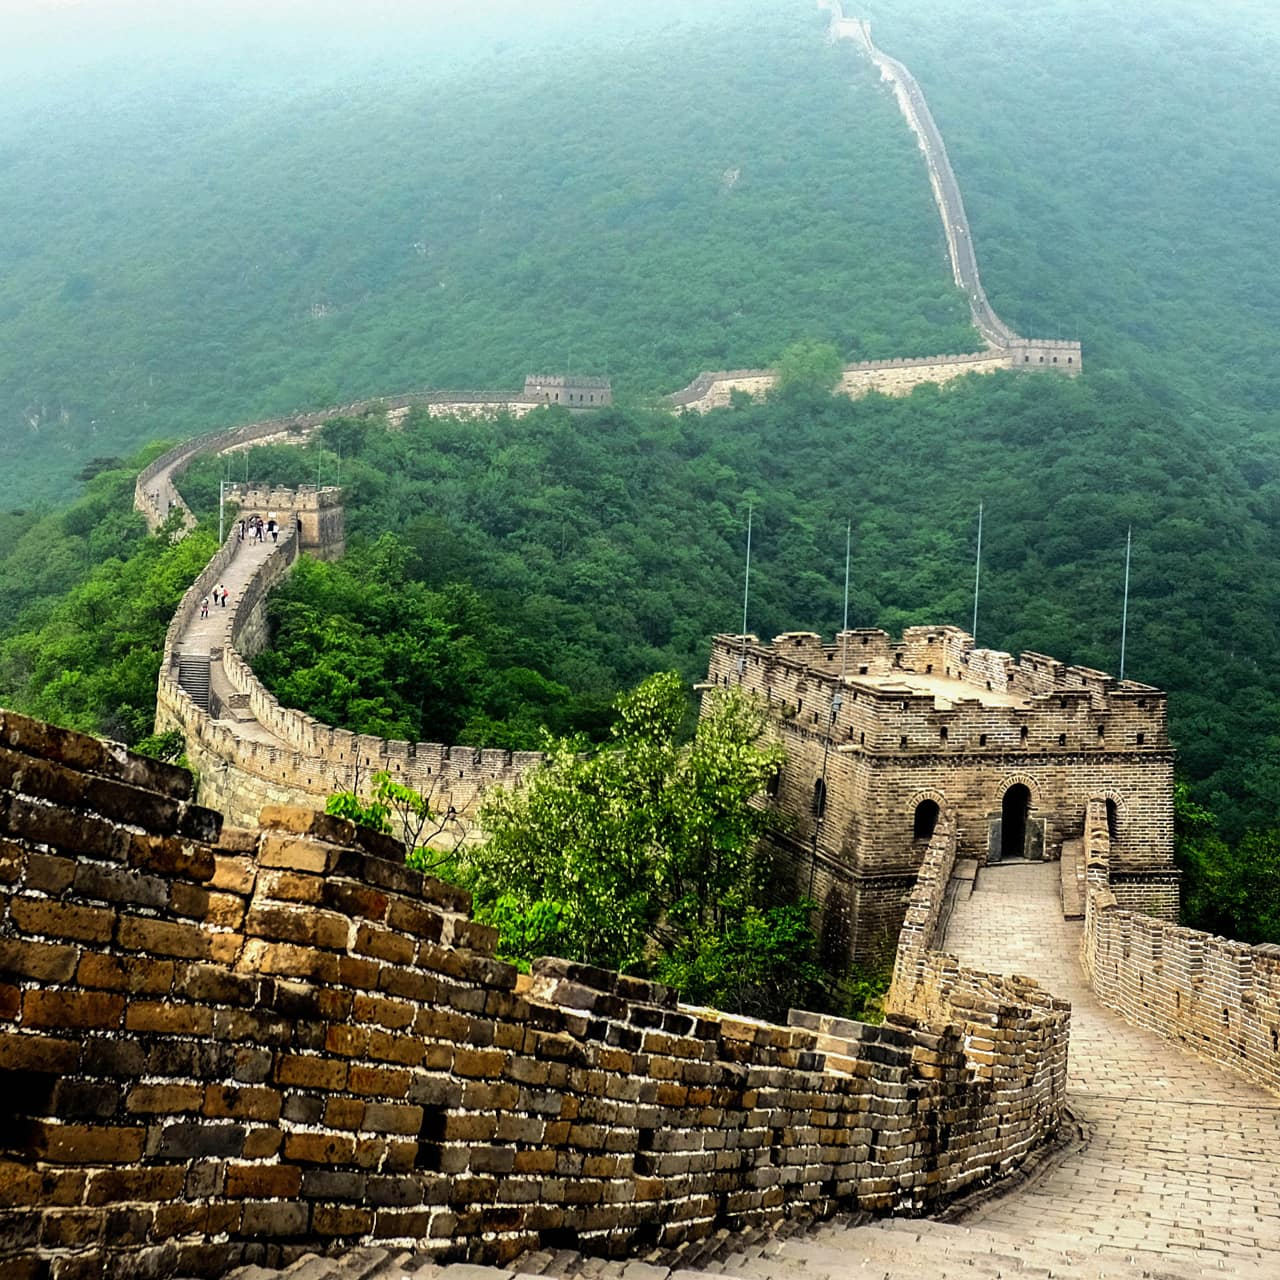 The Great Wall of China winds through a lush mountainside